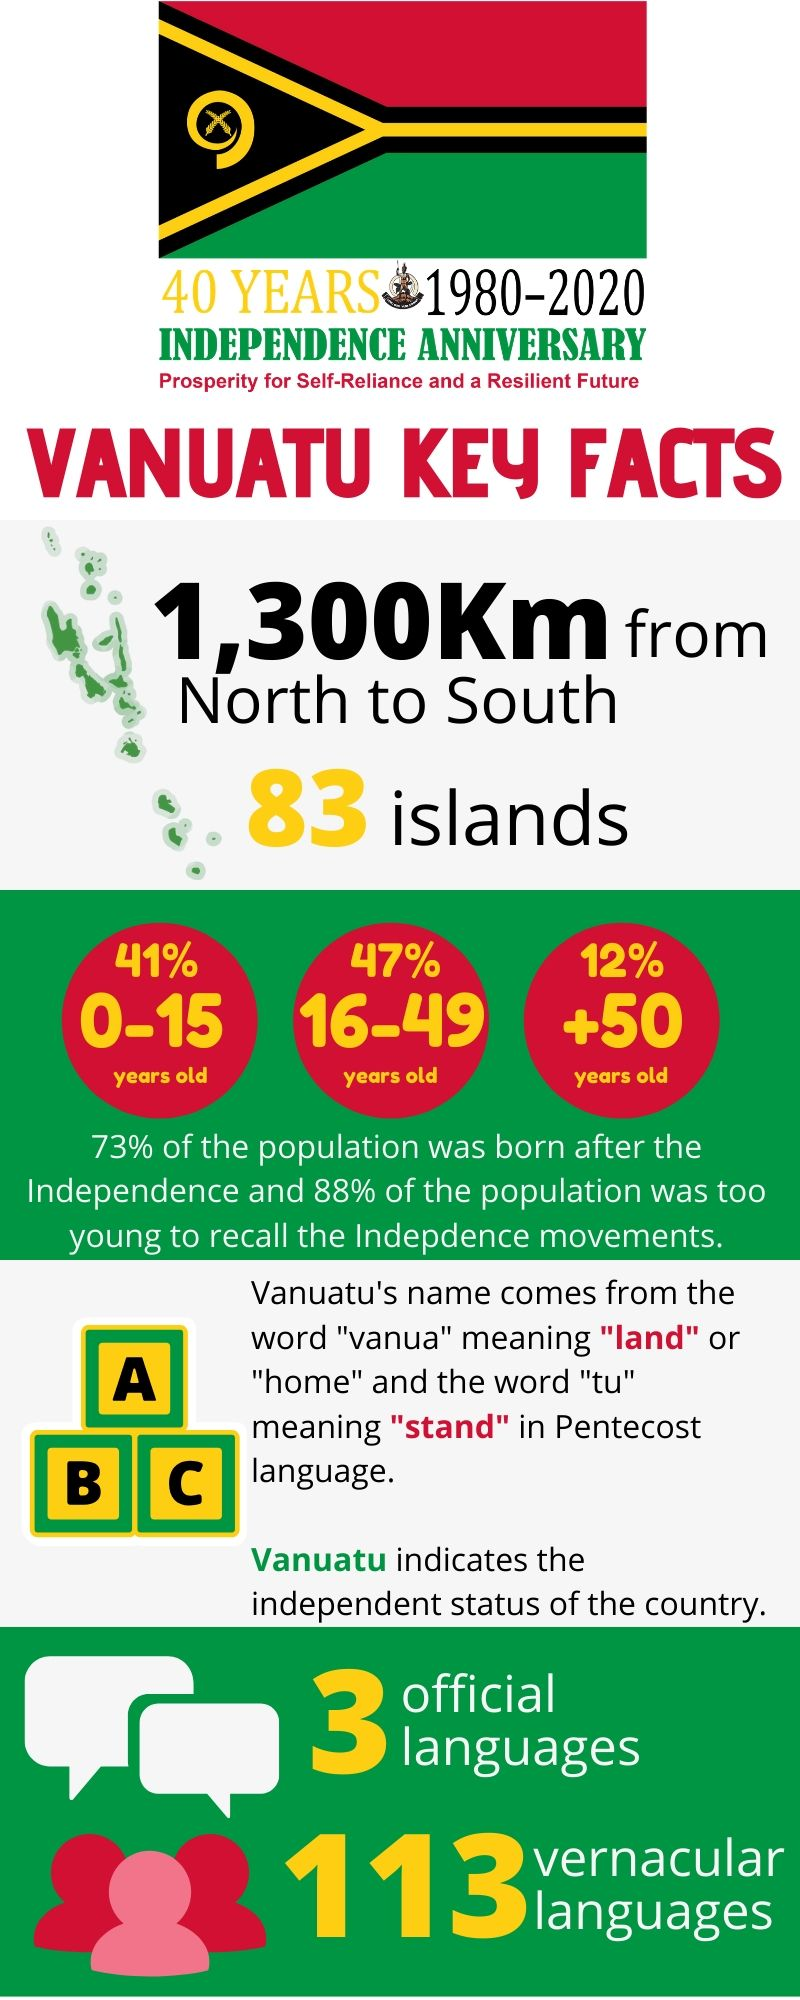 Vanuatu infographic key facts